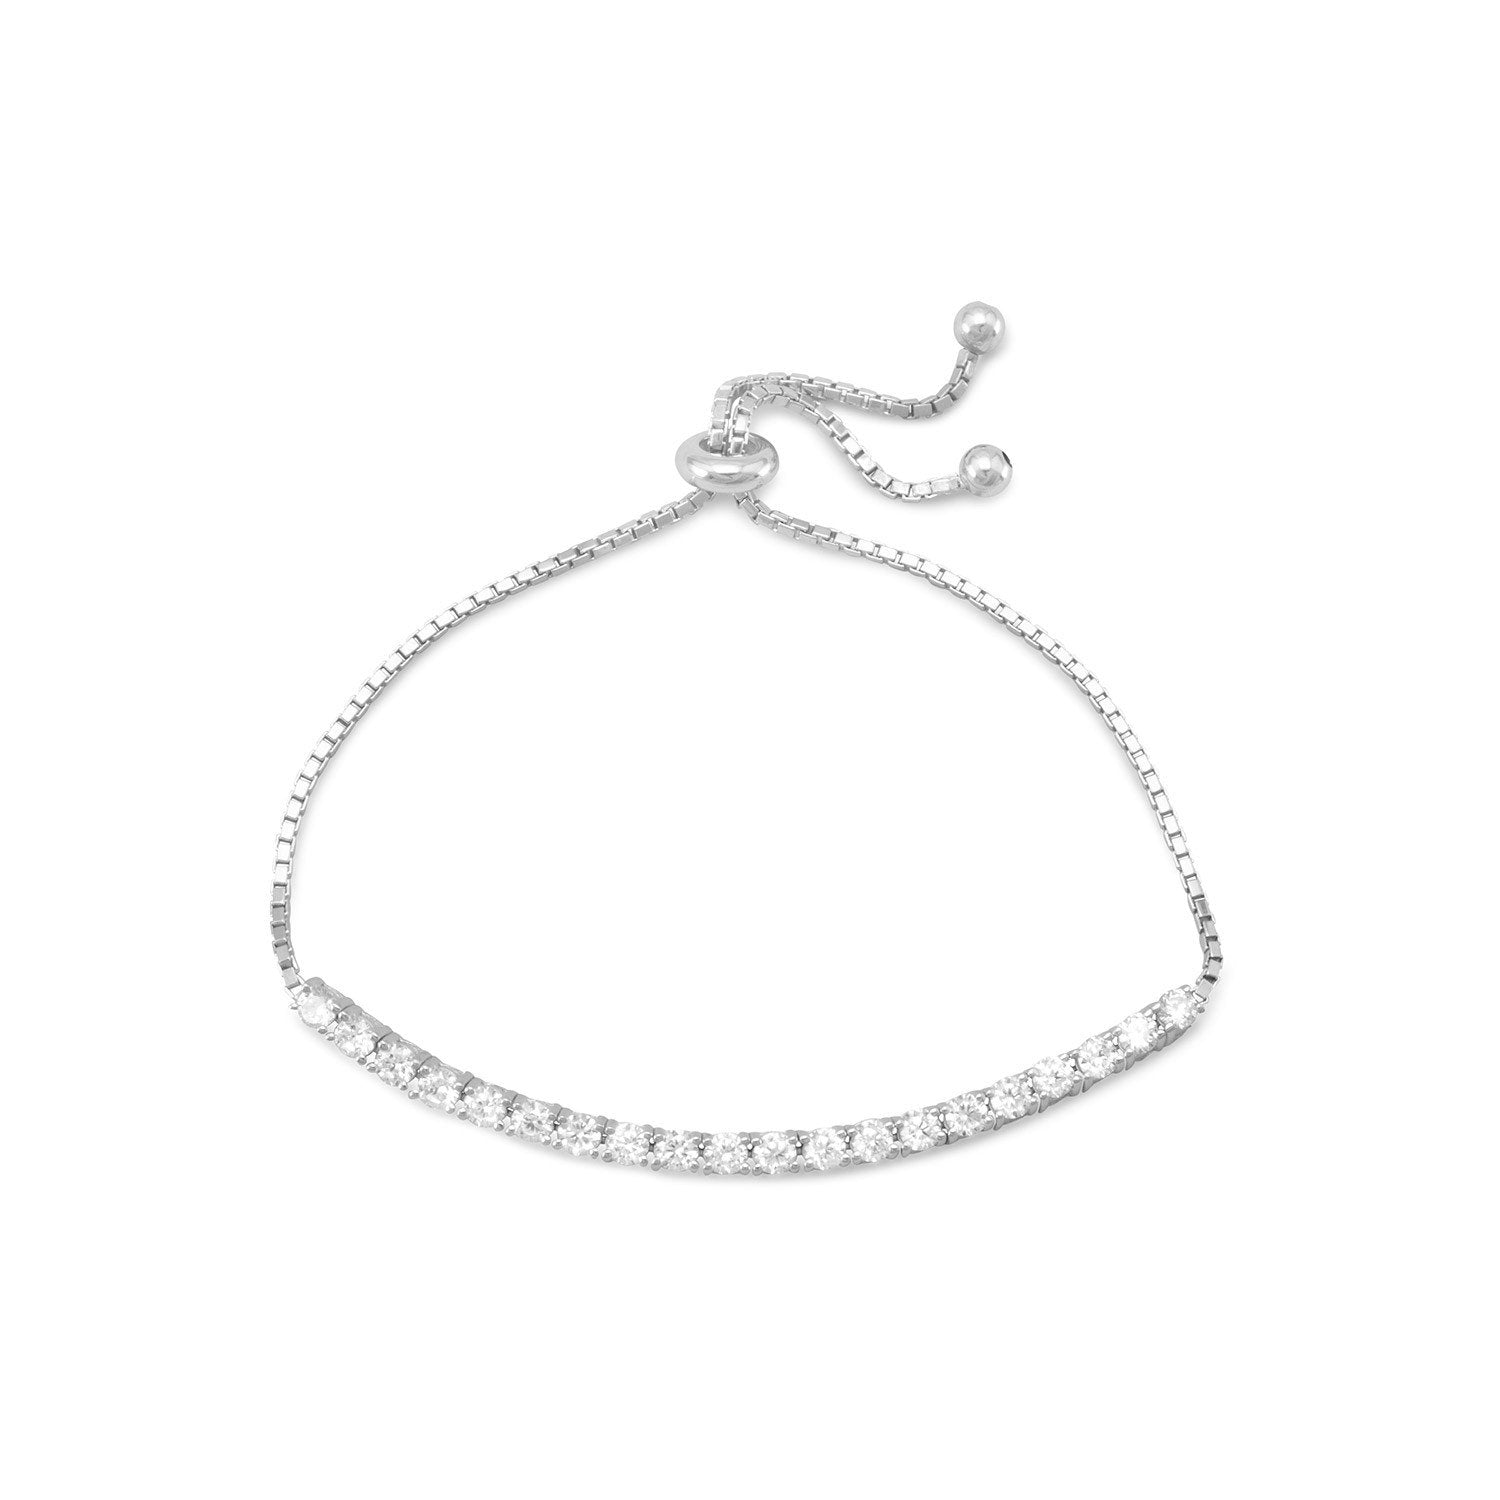 Rhodium Plated CZ Friendship Bolo Bracelet - Rocky Mt. Outlet Inc - Shop & Save 24/7